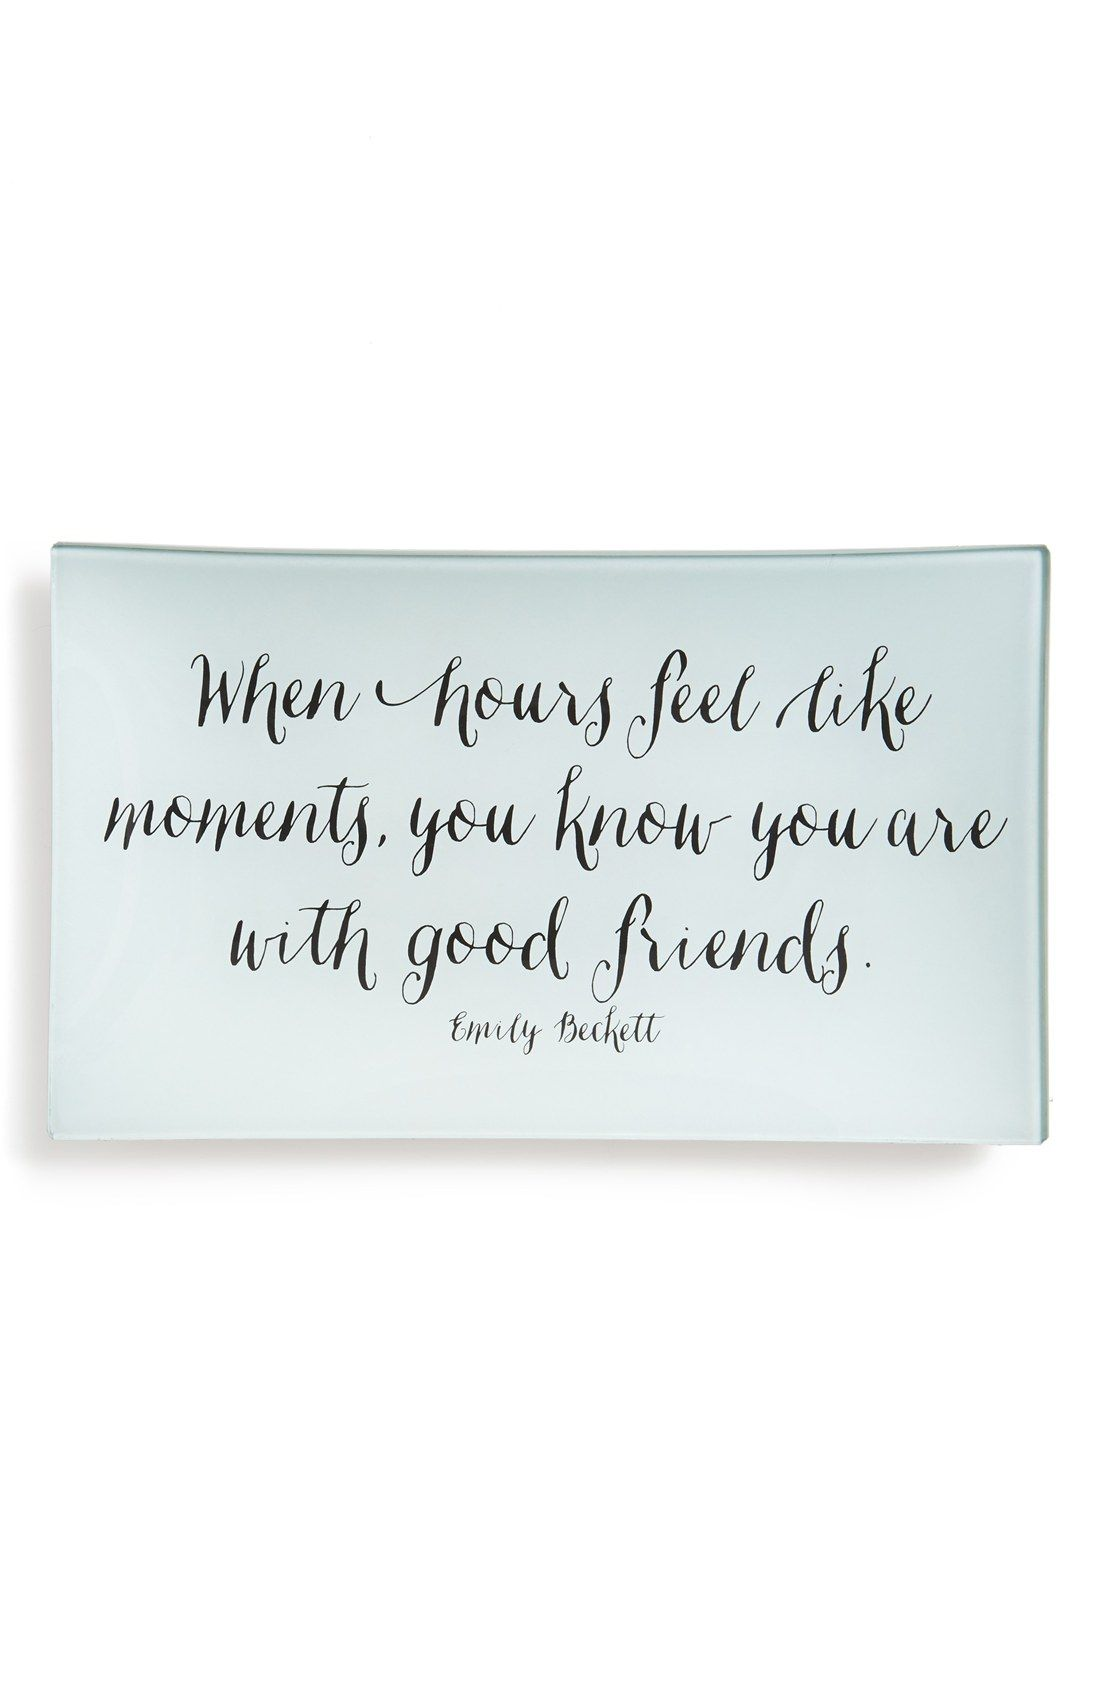 Ben S Garden Hours Like Moments Trinket Tray Nordstrom Friendship Quotes Friends Quotes Quotes